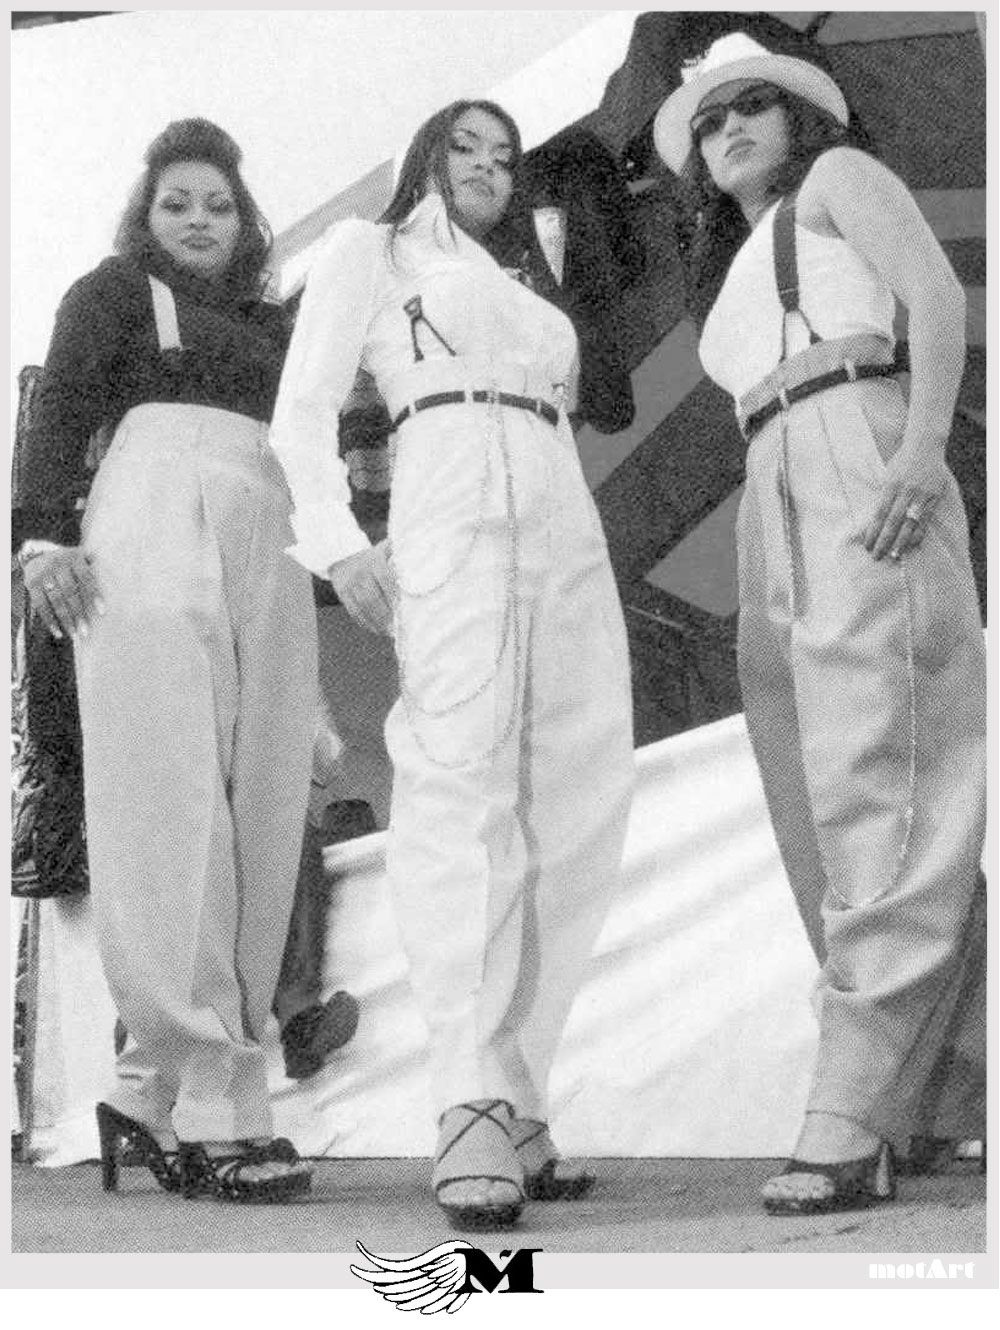 chola fashion 1950. totally forgot about suspenders as an option!! | CHICANO STYLE xx | Pinterest | Suspenders, Forget and Chicano